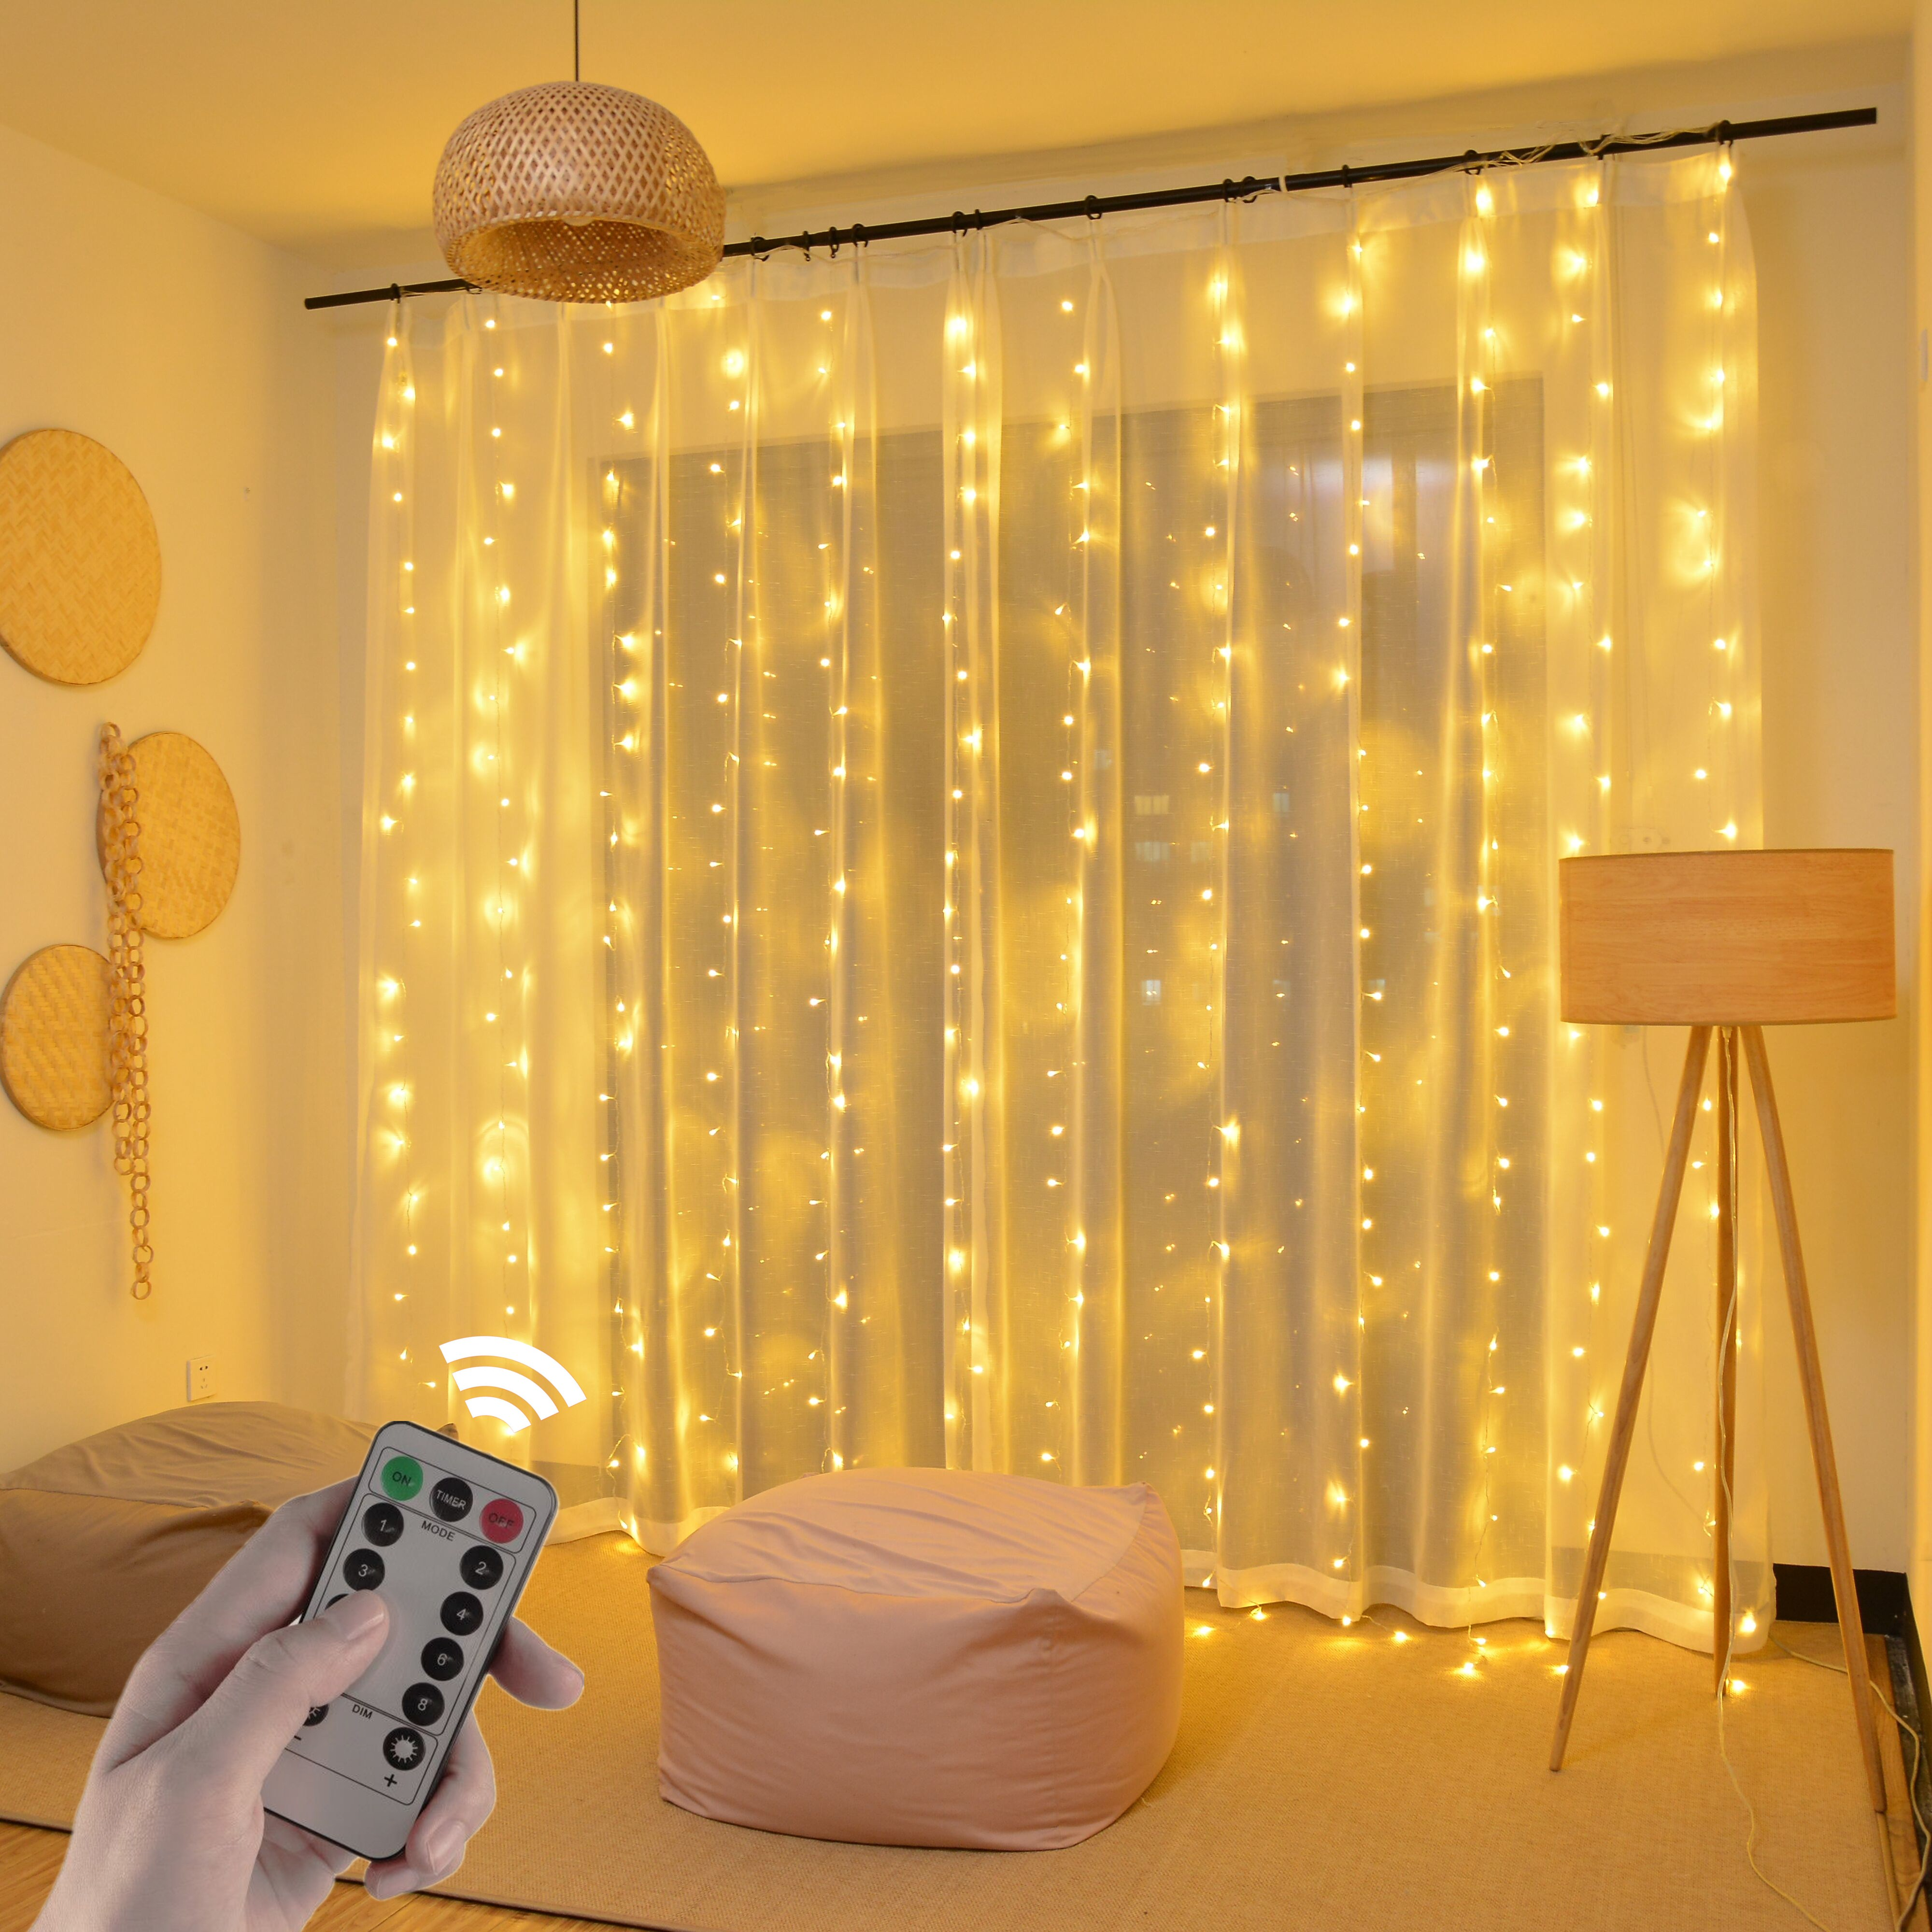 3M LED Christmas Fairy String Lights USB Remote Control Festoon Garland on Window New Year Holiday Decoration for Home Outdoor